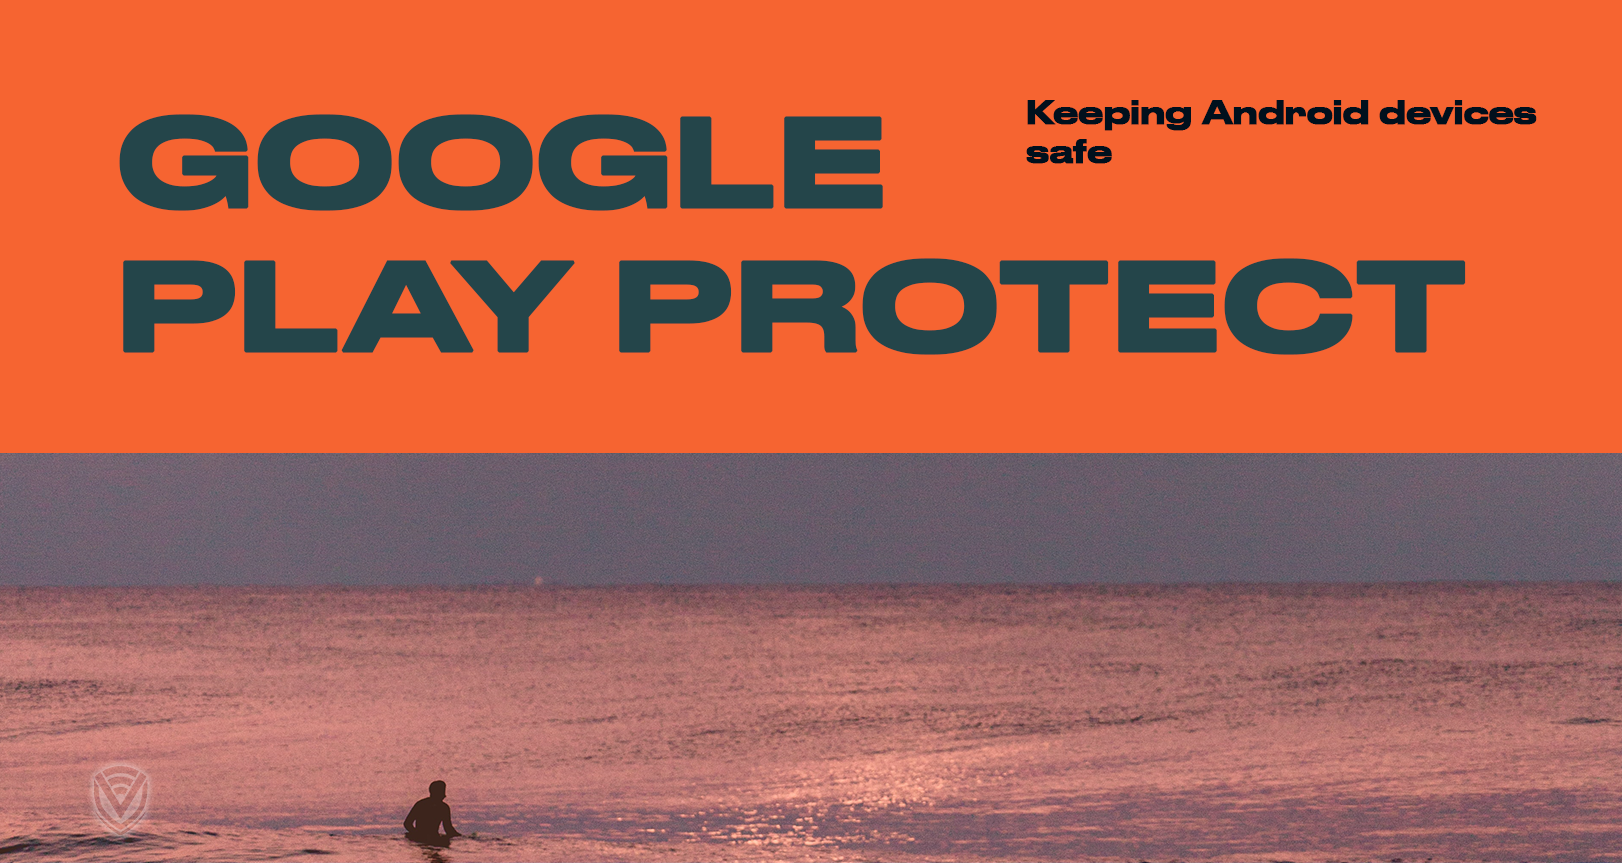 What is Google Play Protect?